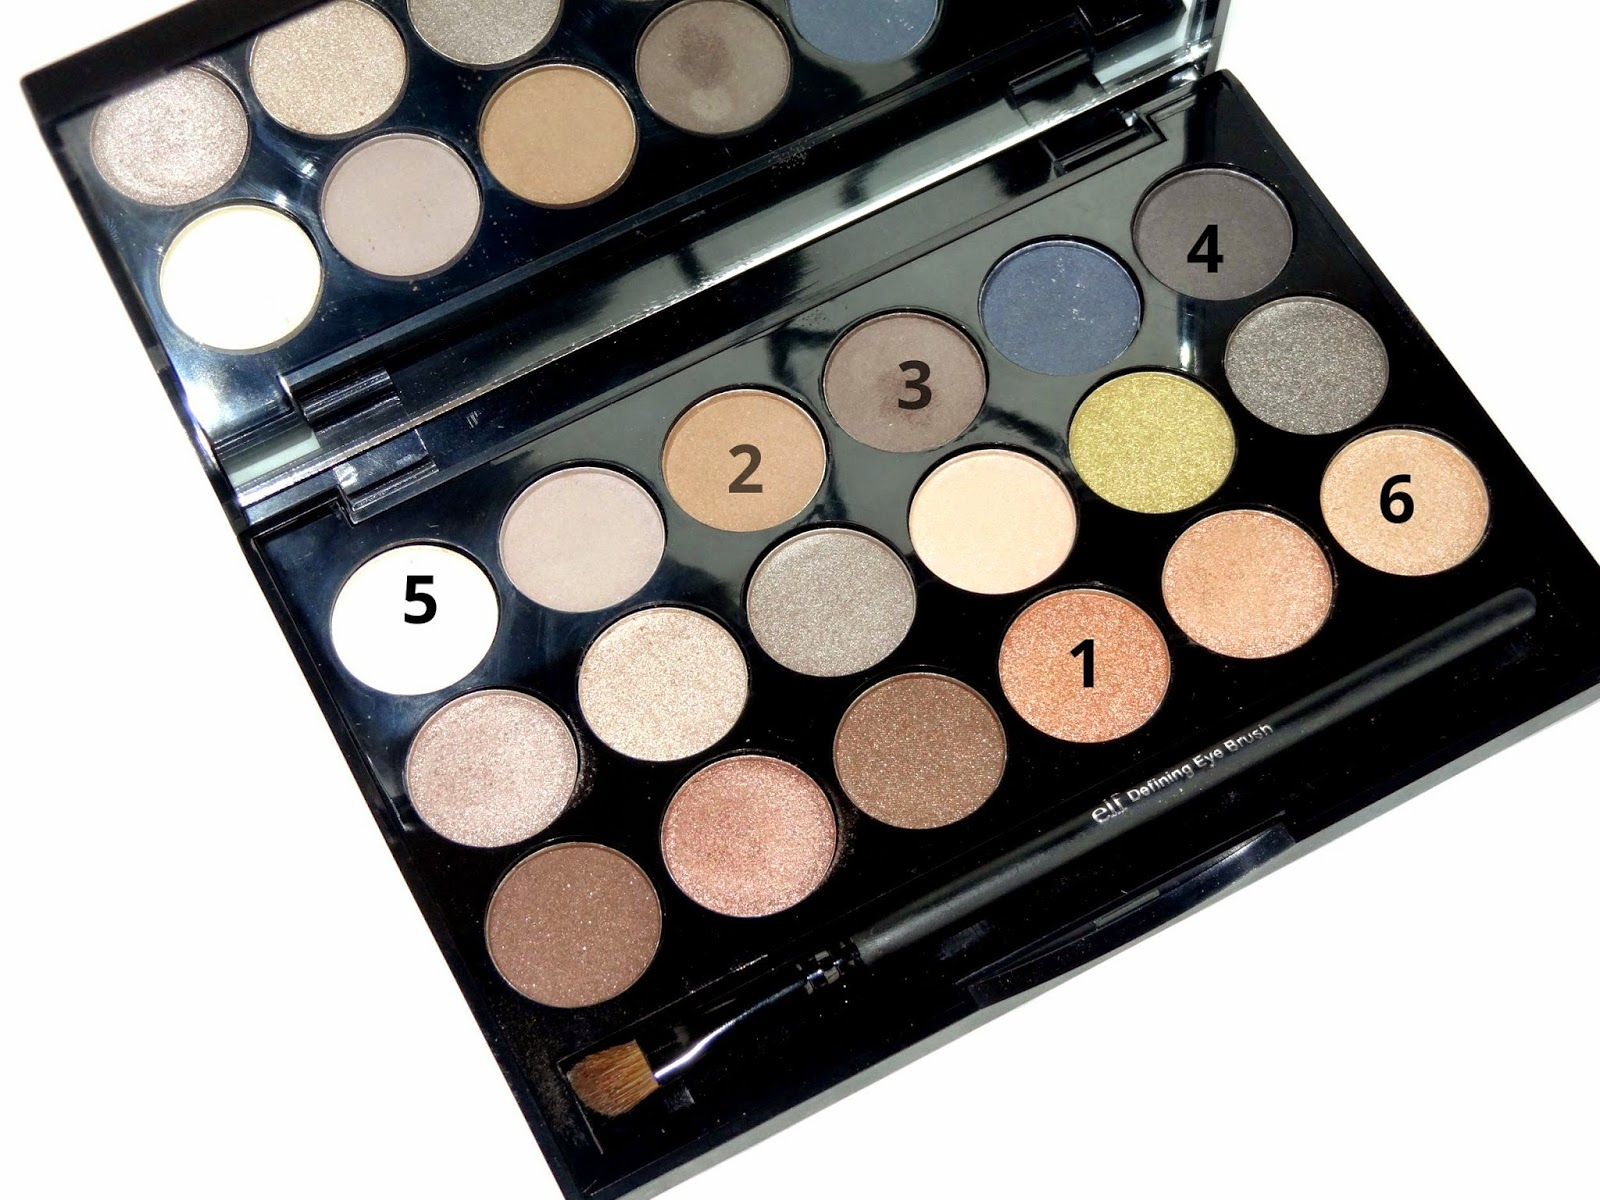 e.l.f cosmetics essential 18 piece palette eyeshadow choices for makeup look